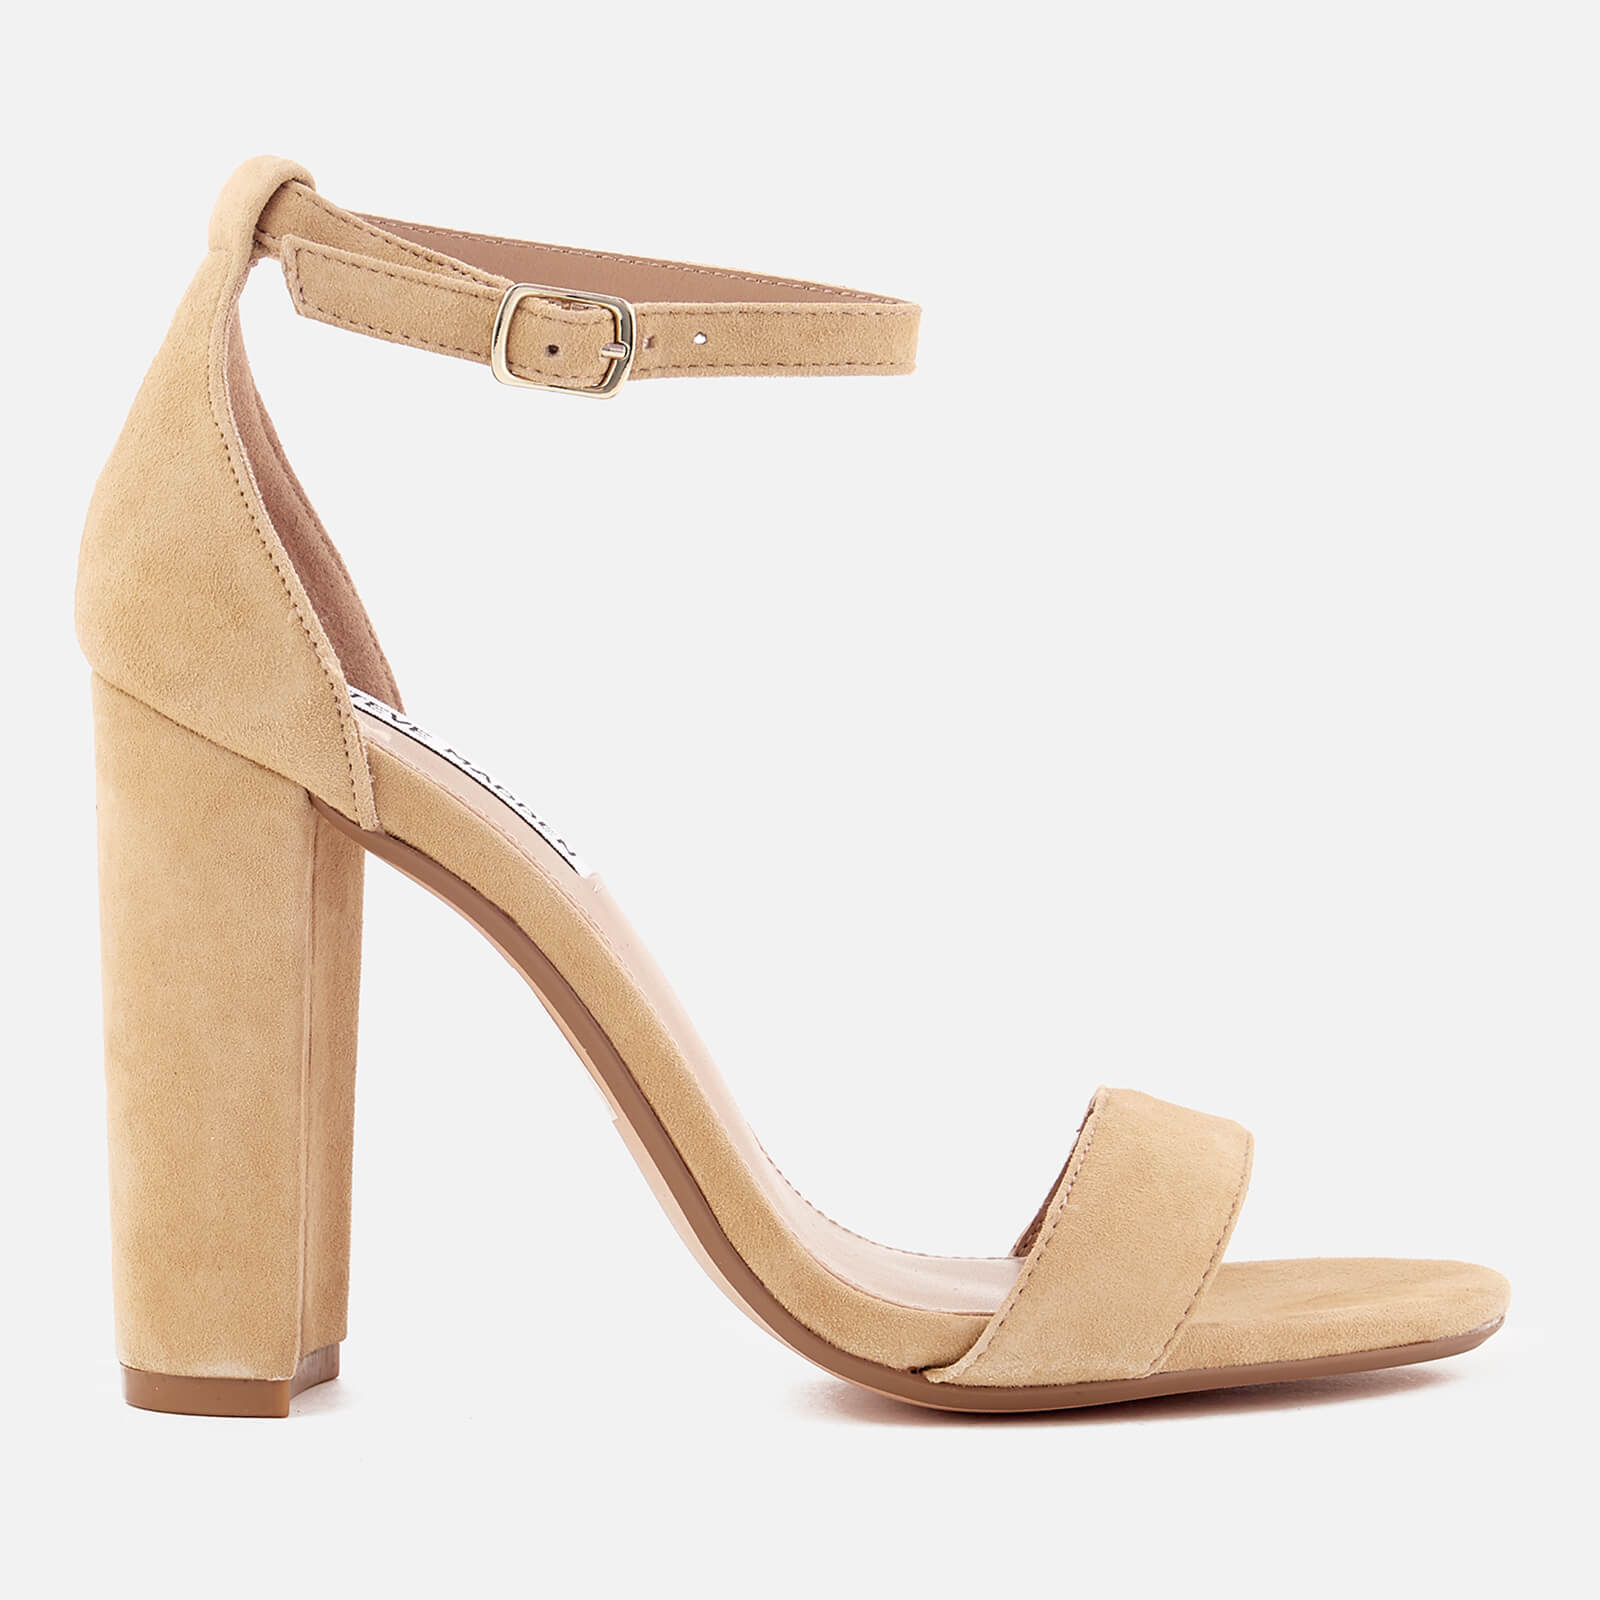 ef3edeefd8e Steve Madden Women s Carrson Suede Barely There Heeled Sandals - Sand Womens  Accessories